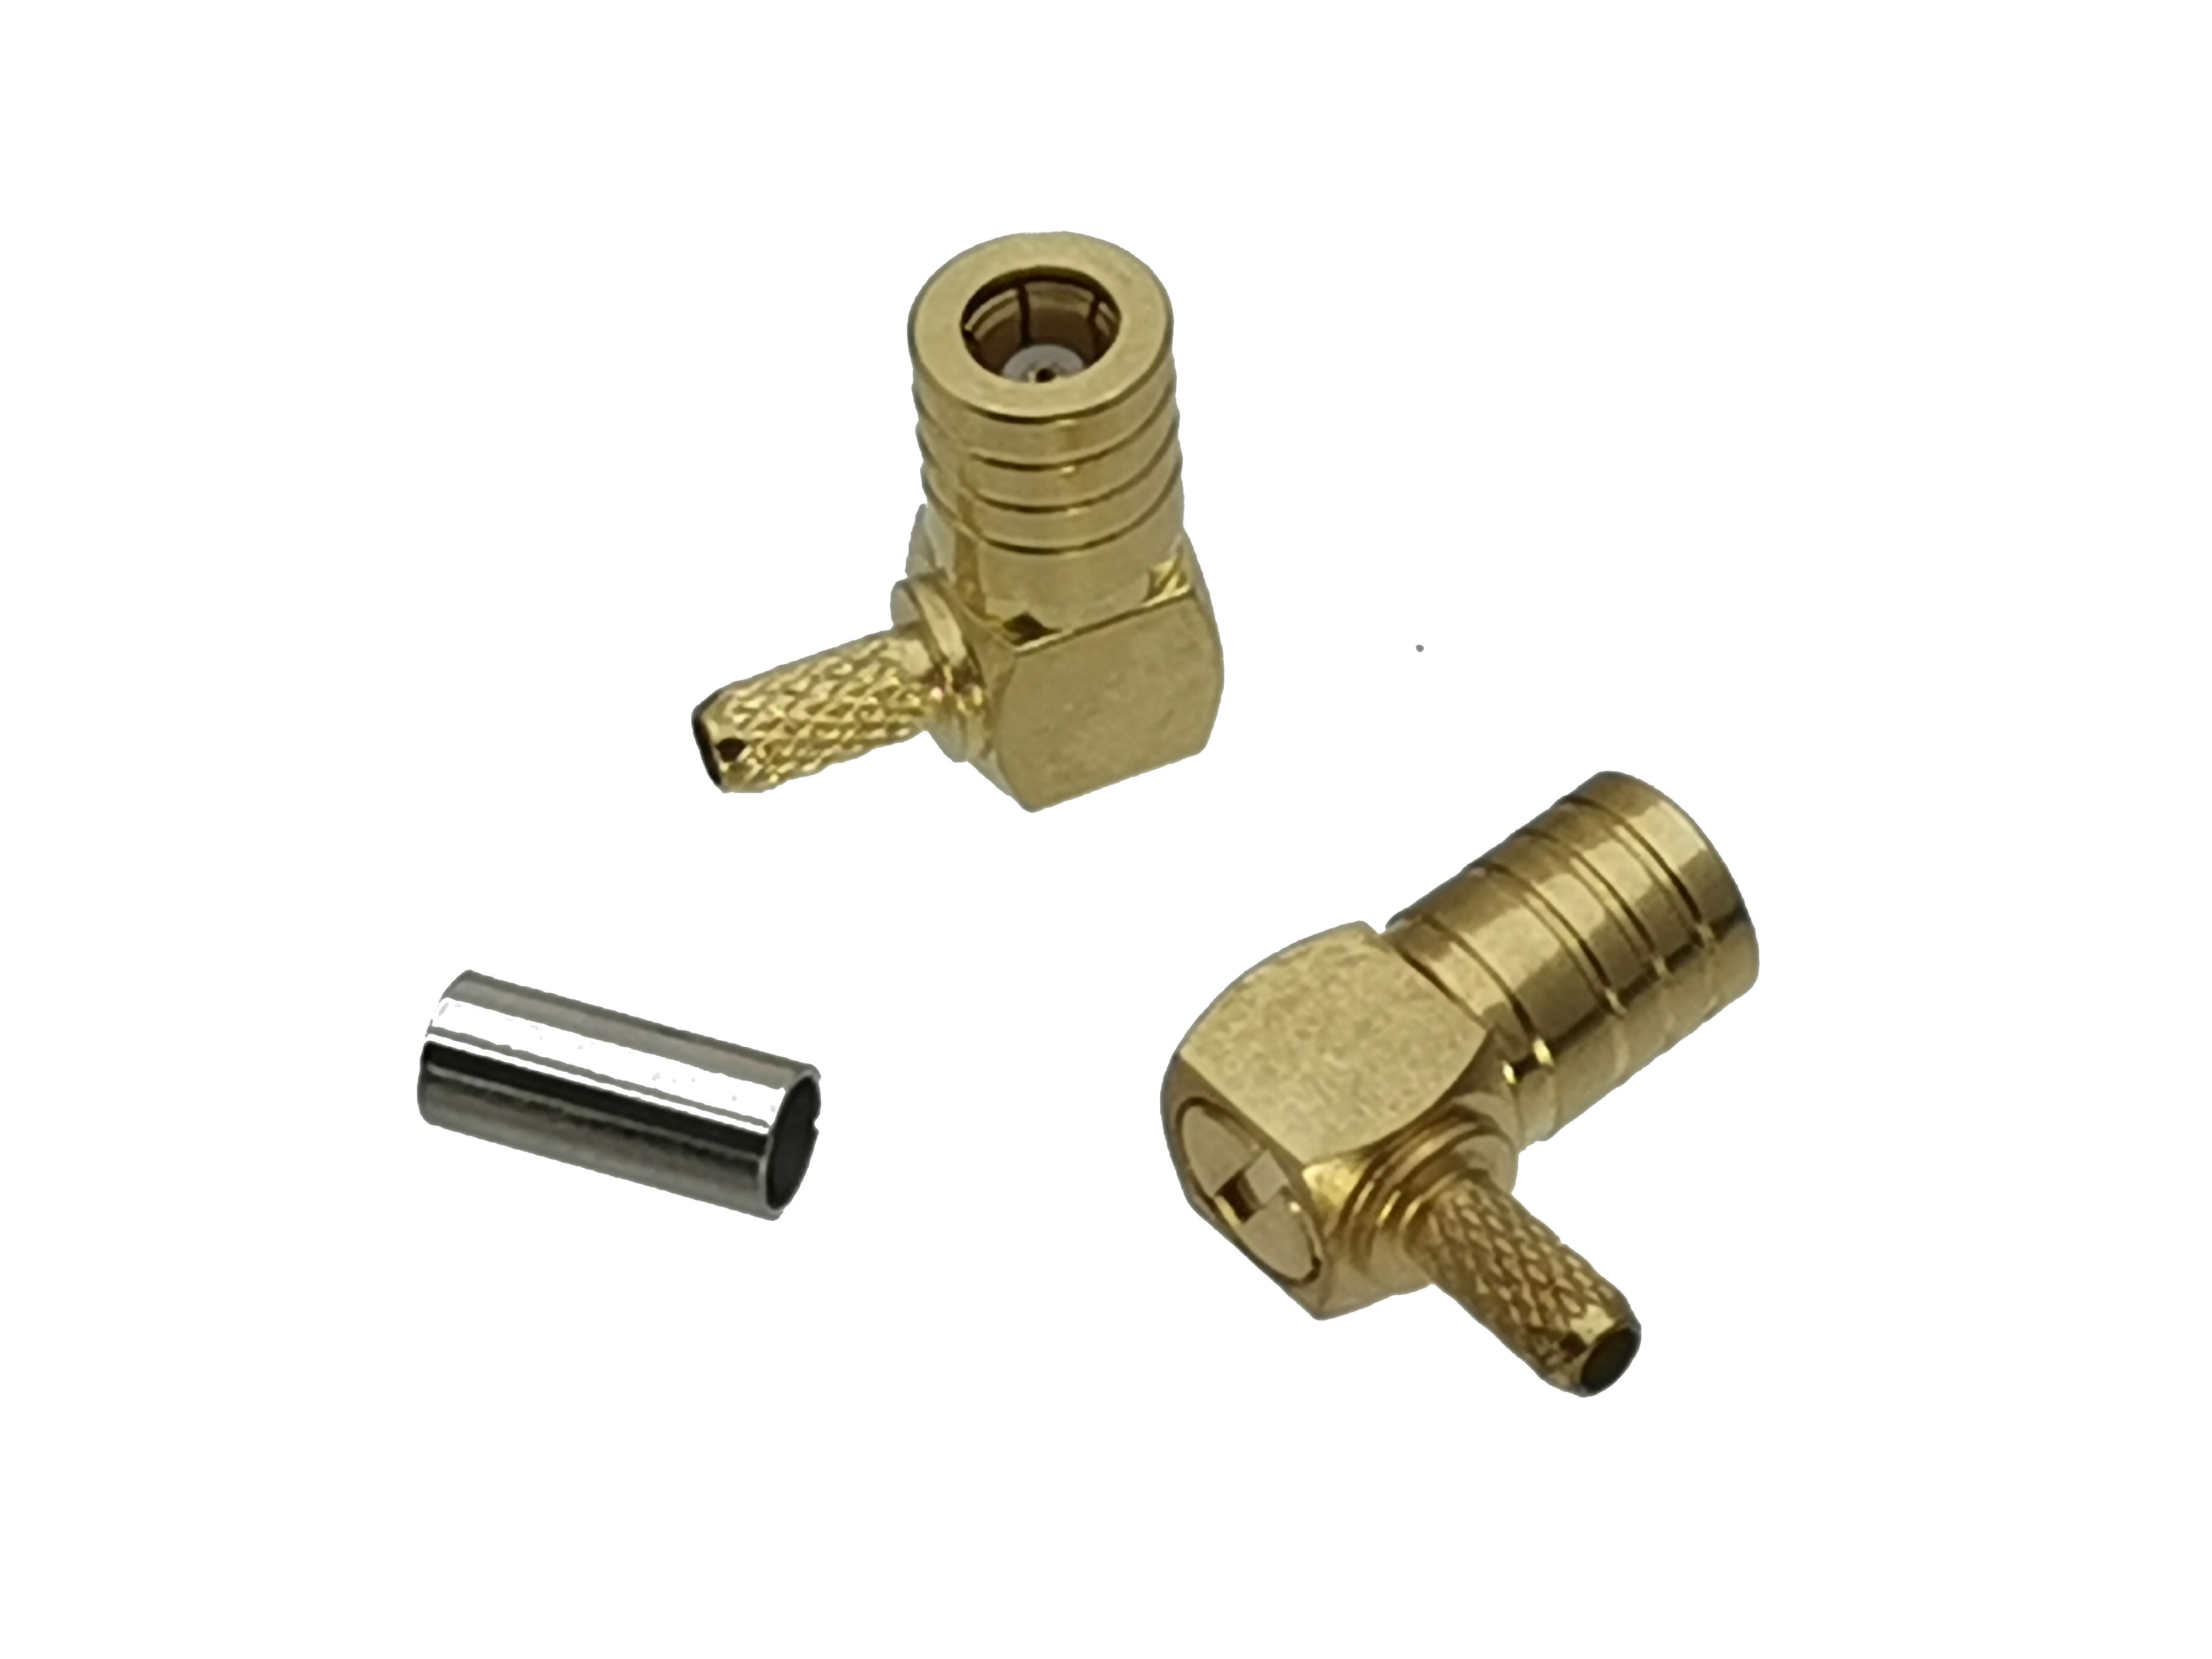 1pce Connector SMB Female Jack Right Angle Crimp RG174 RG316 LMR100 Cable